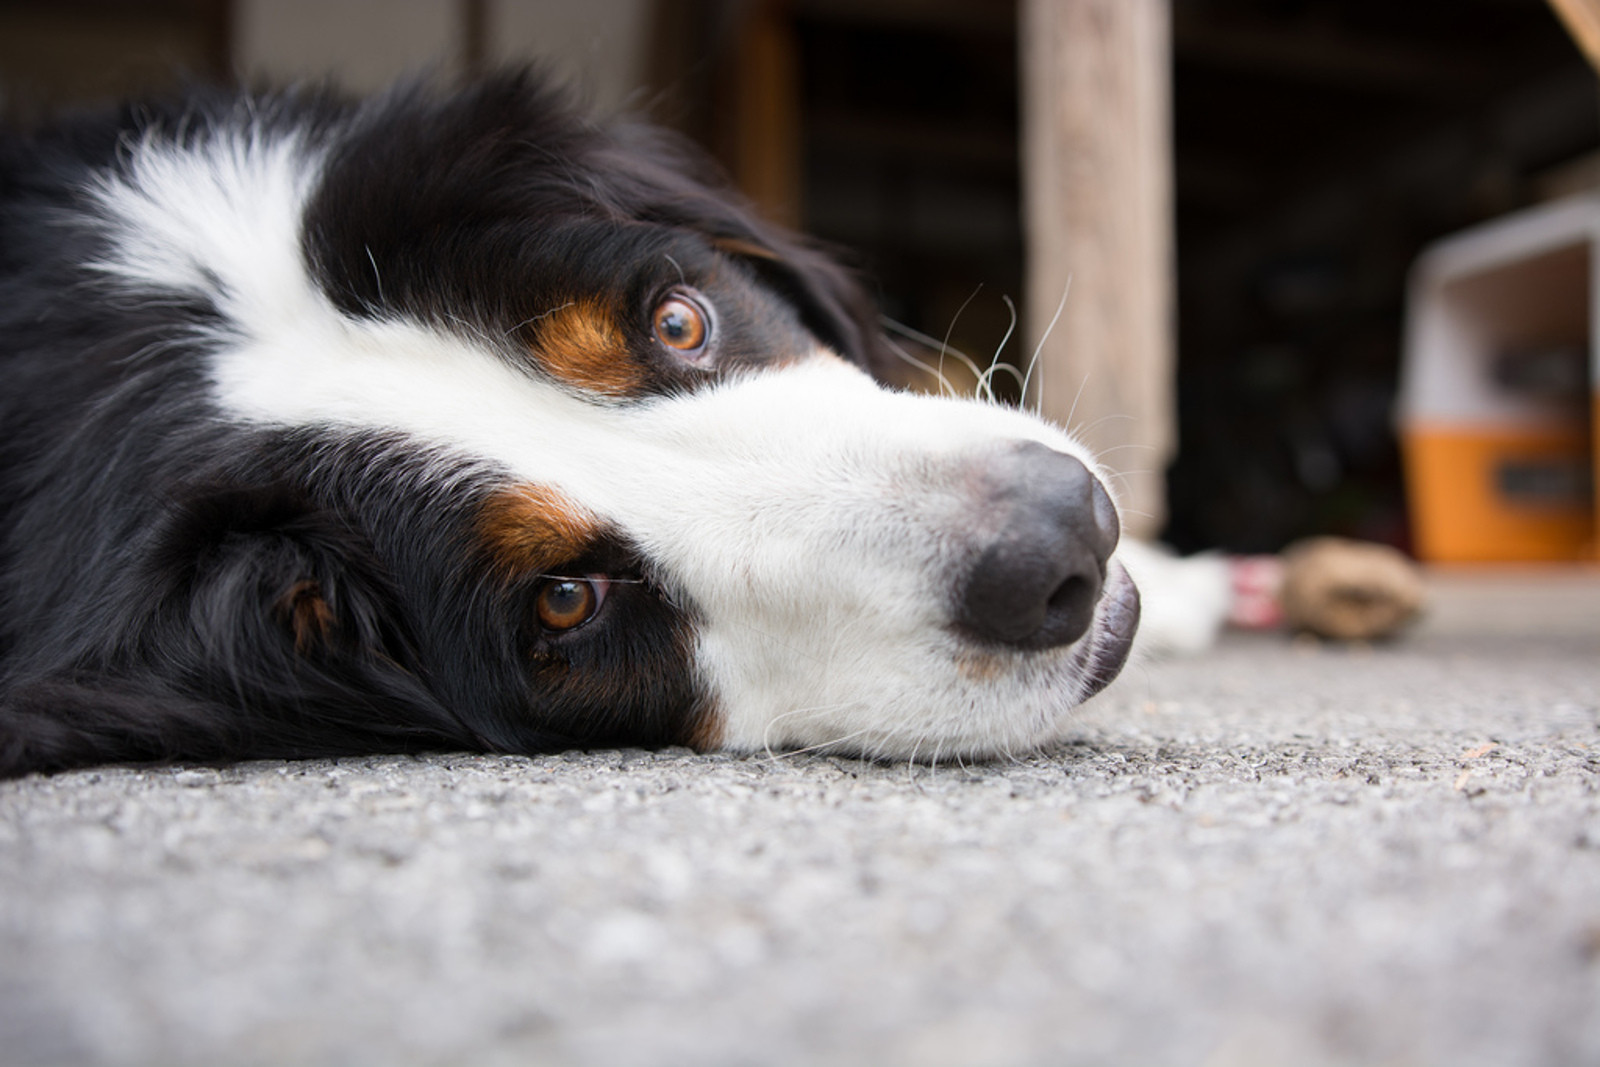 3 Great Home Remedies to Settle Your Dog's Upset Stomach